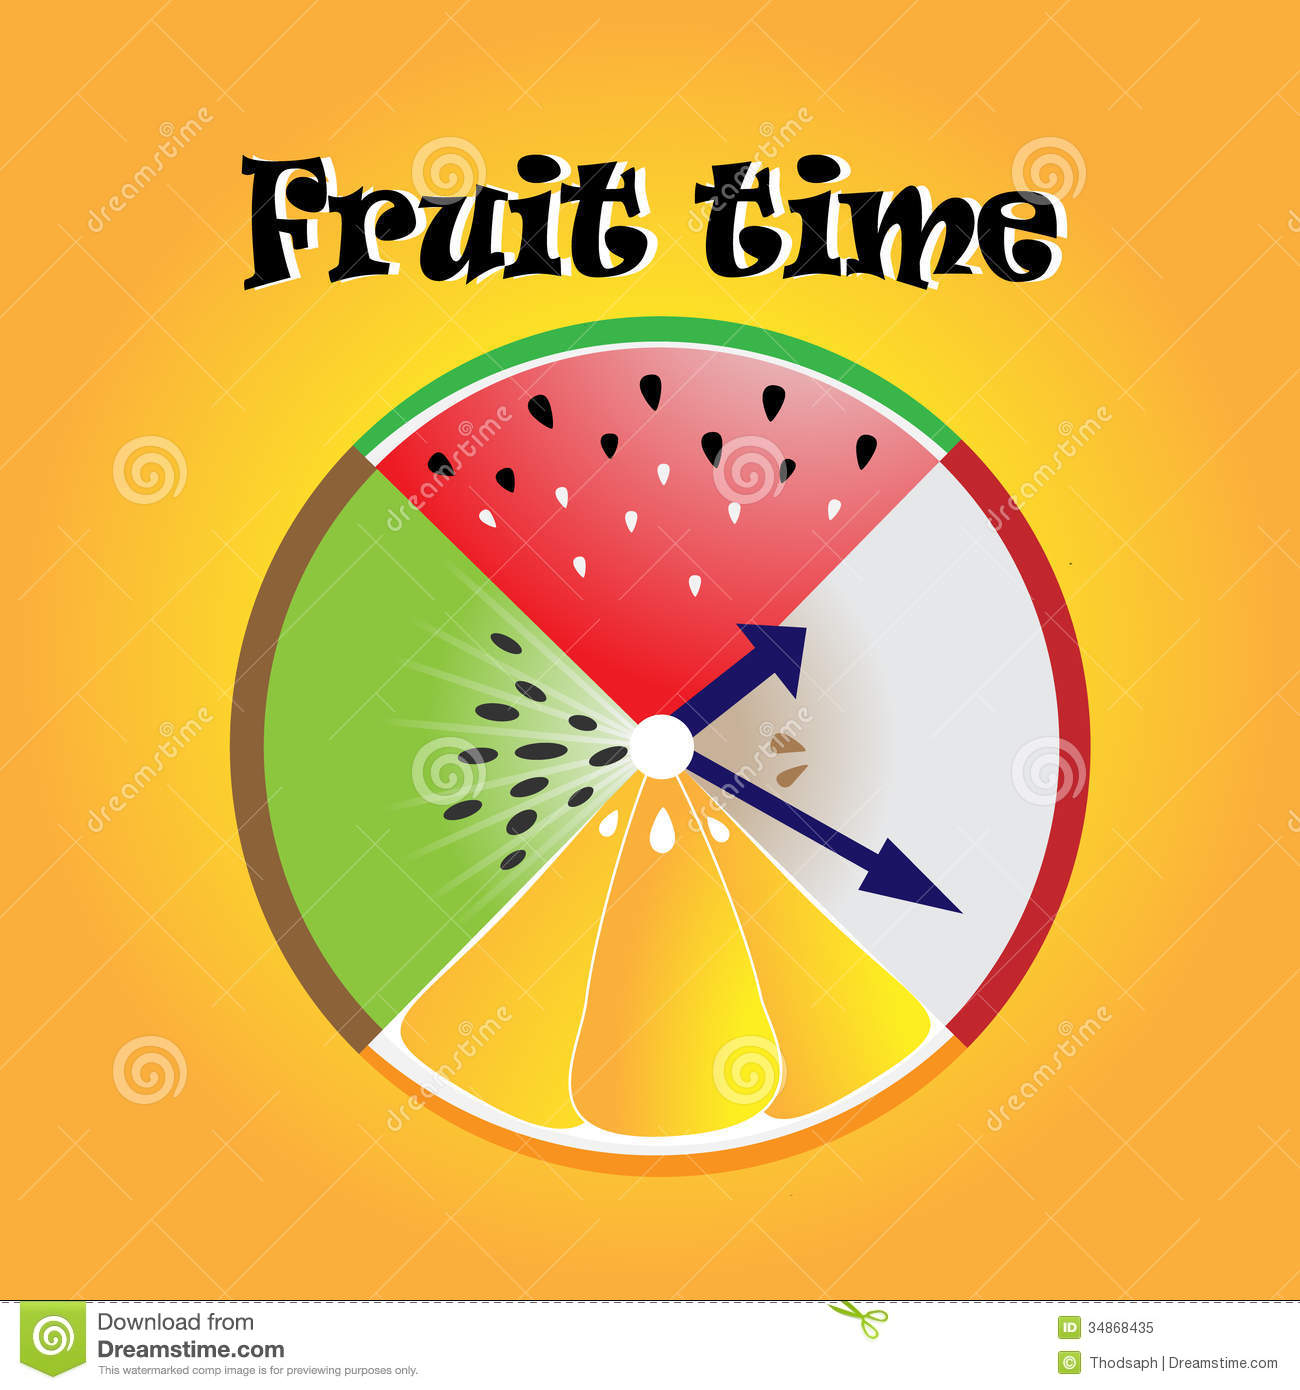 Fruit Time Royalty Free Stock Photo - Image: 34868435